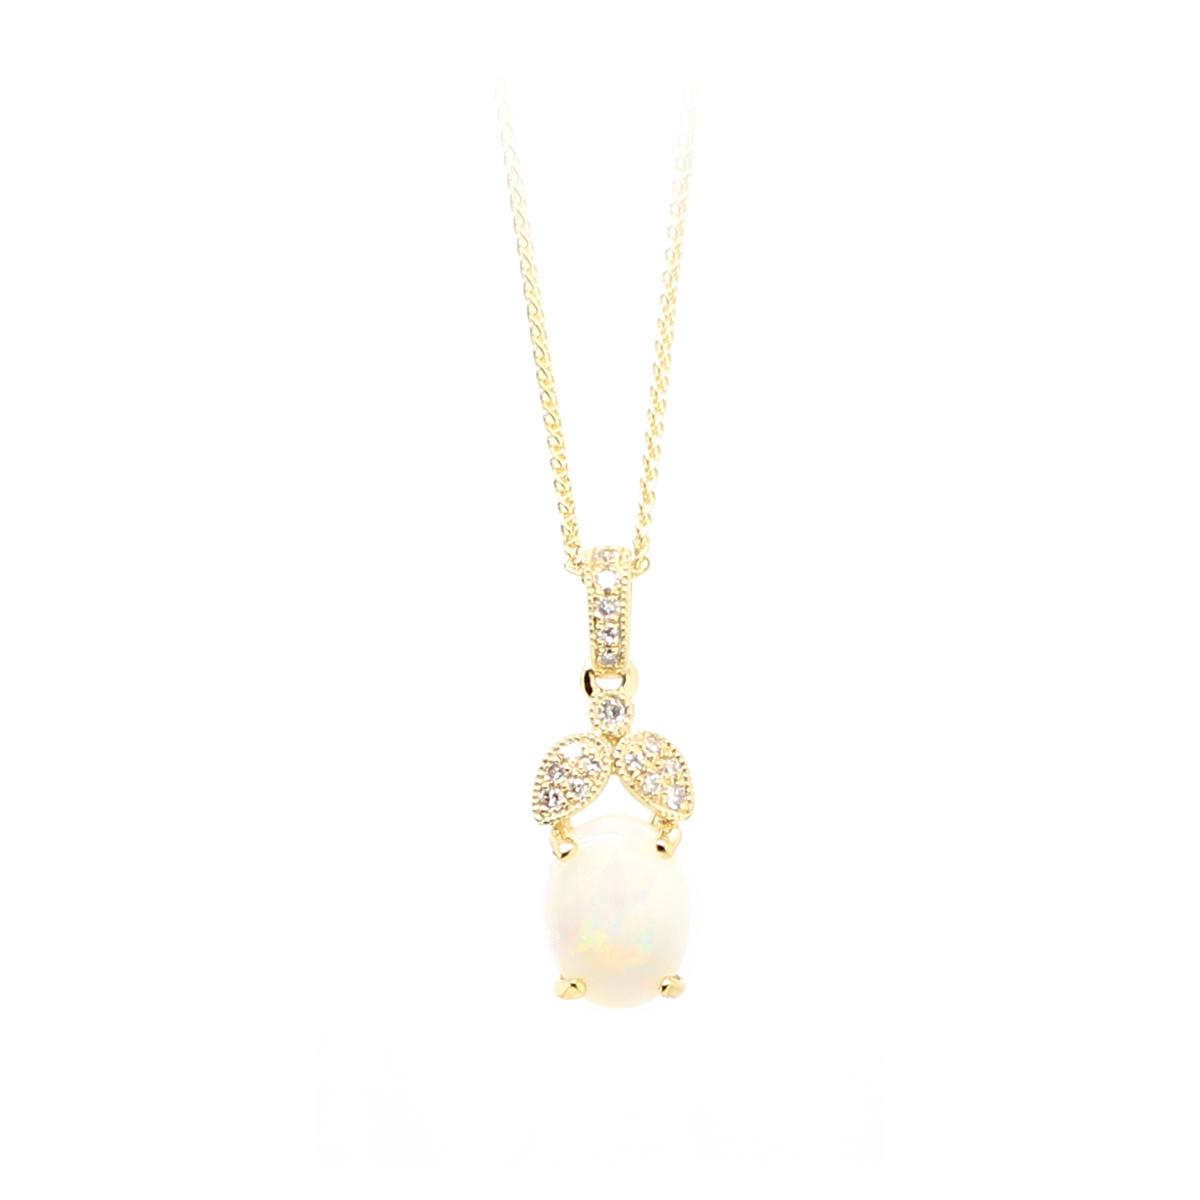 14 Karat Yellow Gold Australian Opal and Diamond Pendant Necklace